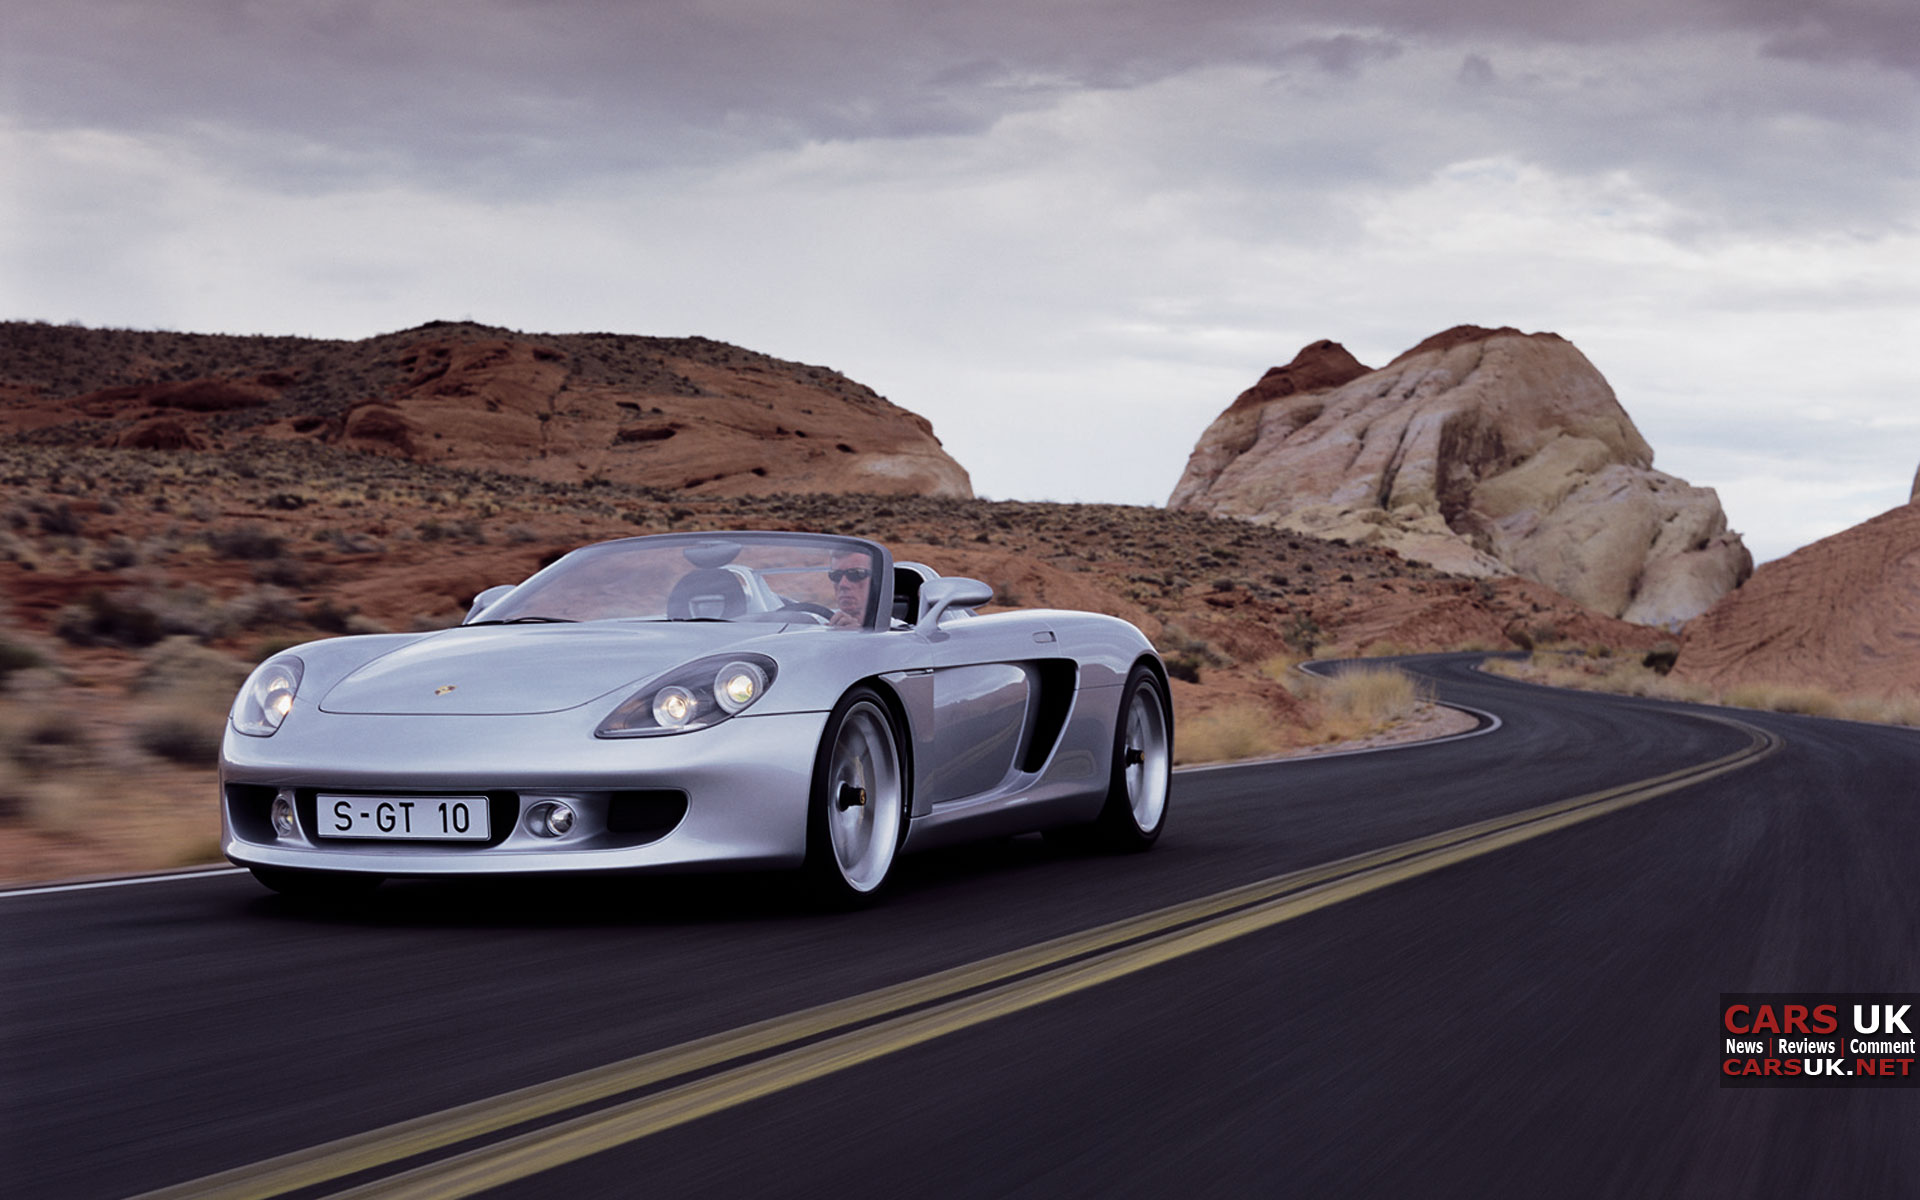 Tags: Carrera GT, Exotic Car Wallpaper, Free Car Wallpaper, Porsche Carrera